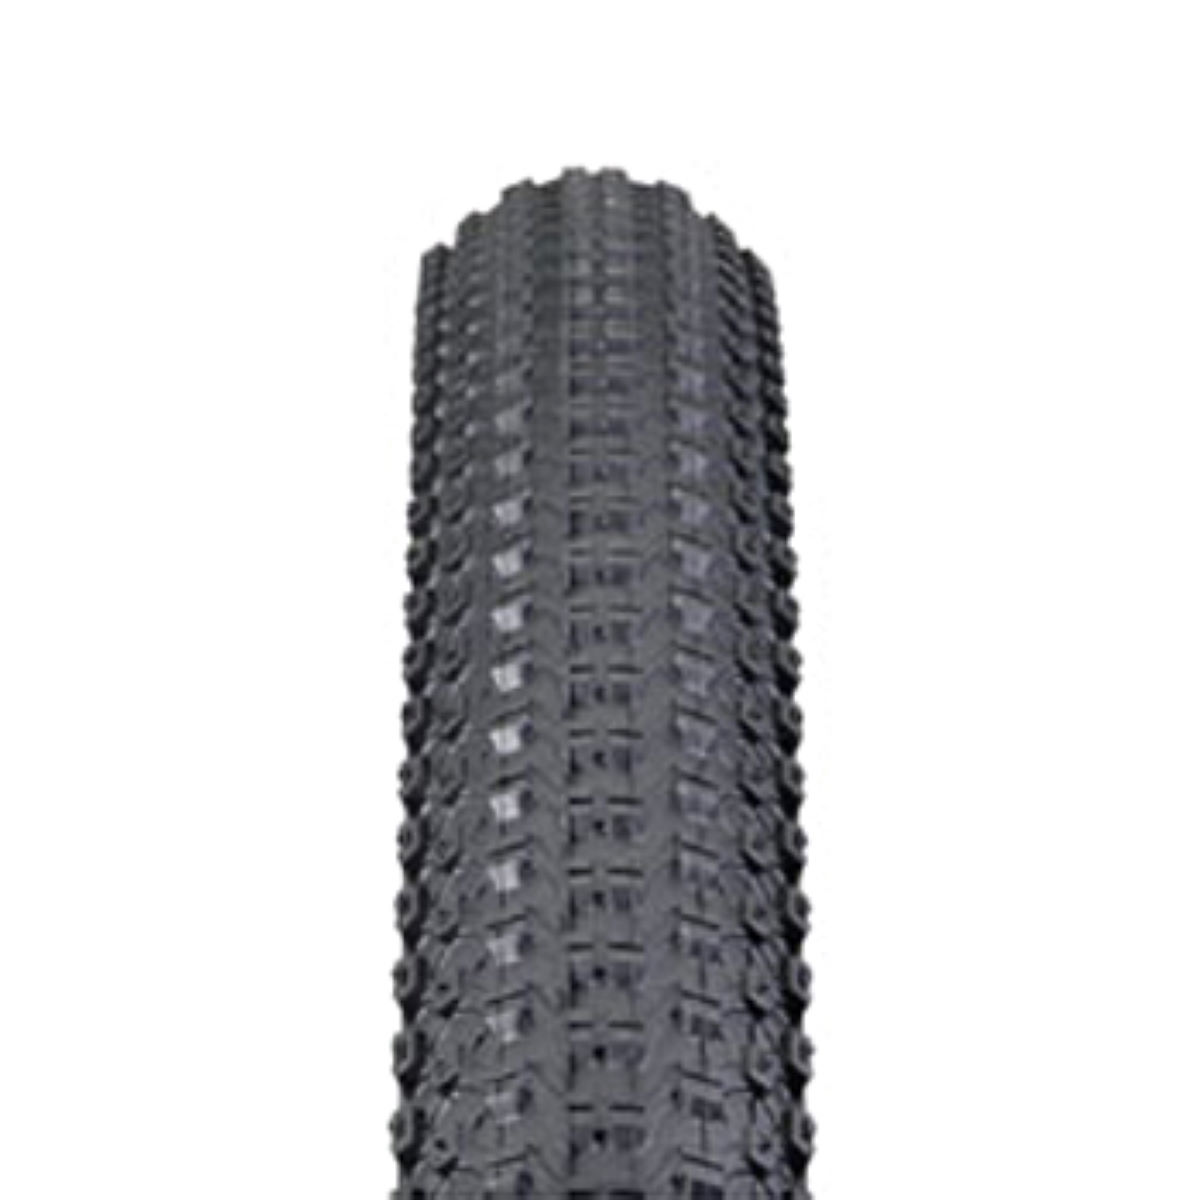 Kenda Small Block 8 DTC Folding Cyclocross Tyre